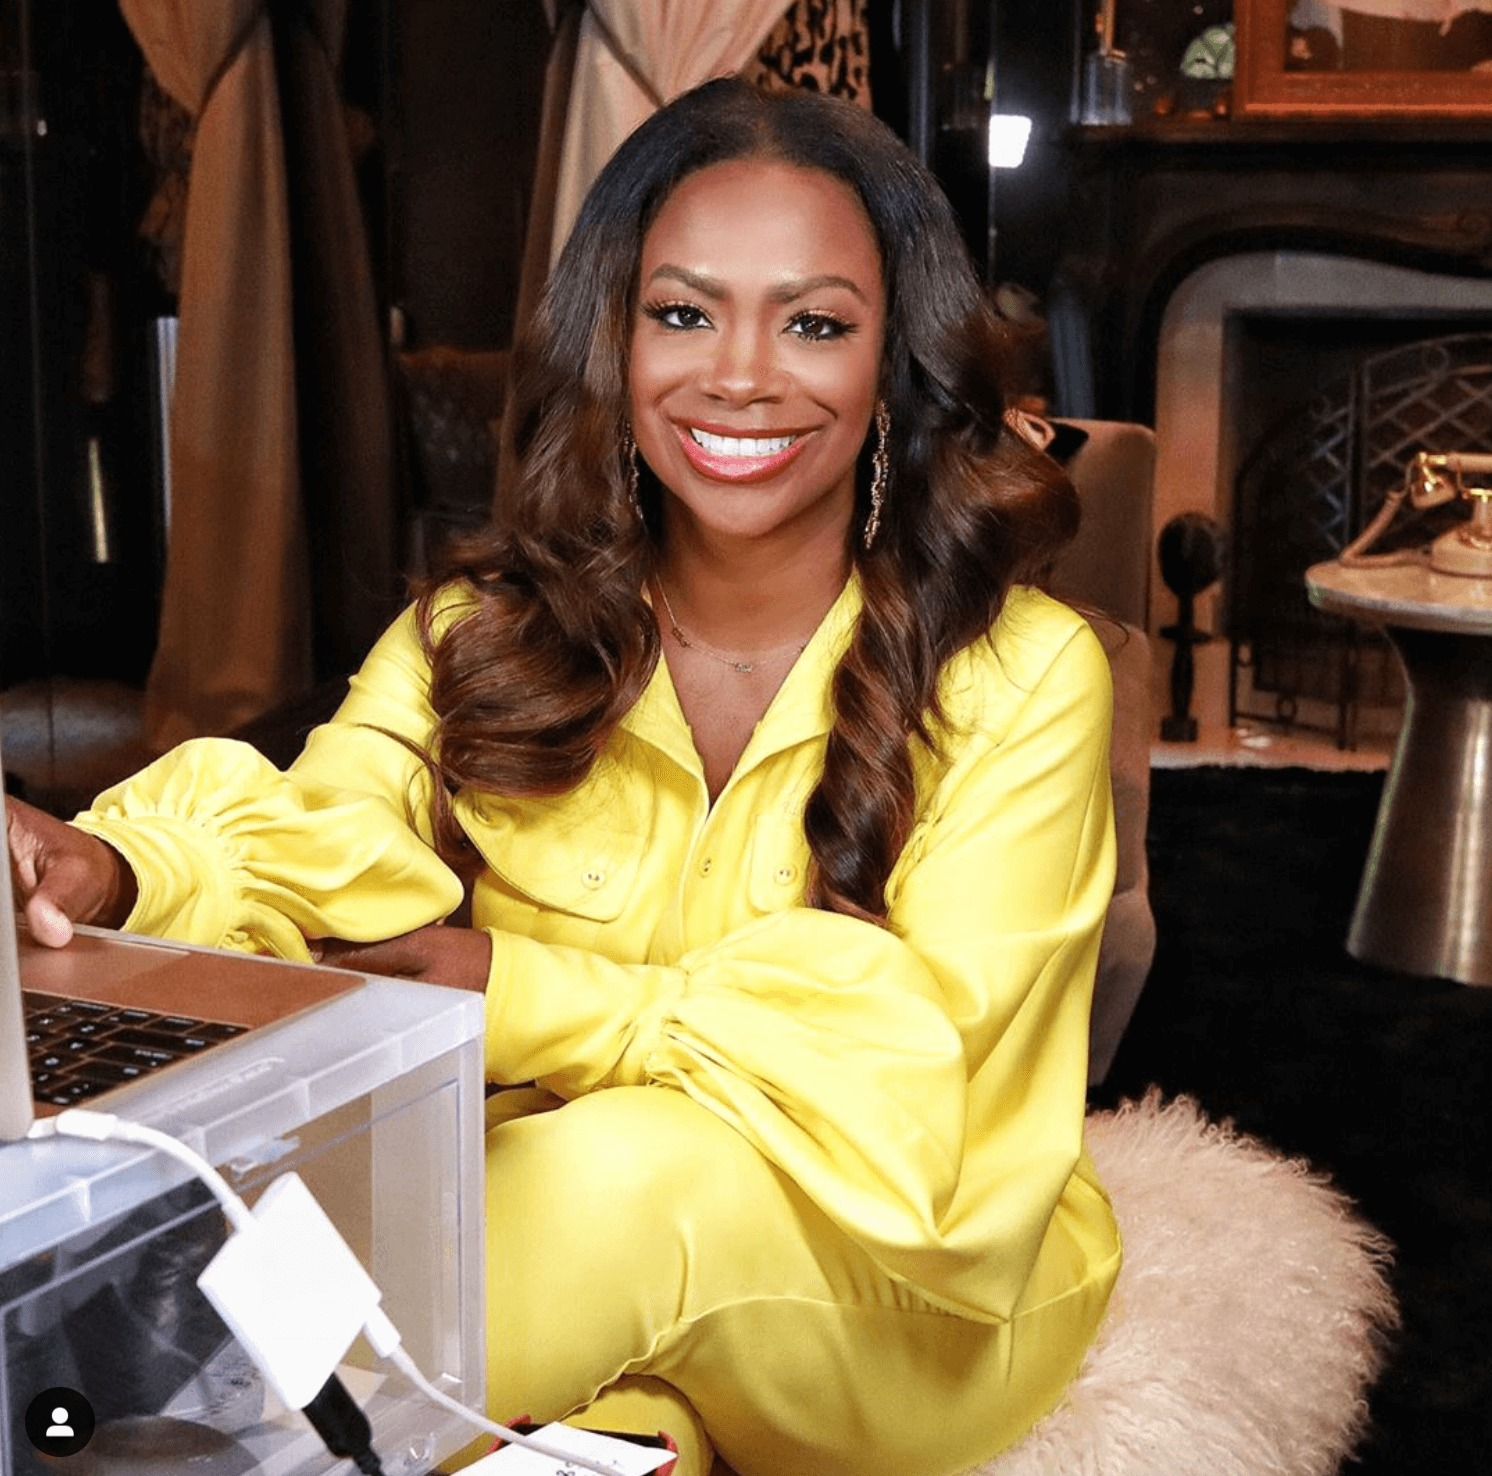 Kandi Burruss Shares A Photo Of Todd Tucker And Blaze On A Plane And Fans Praise The Baby Girl